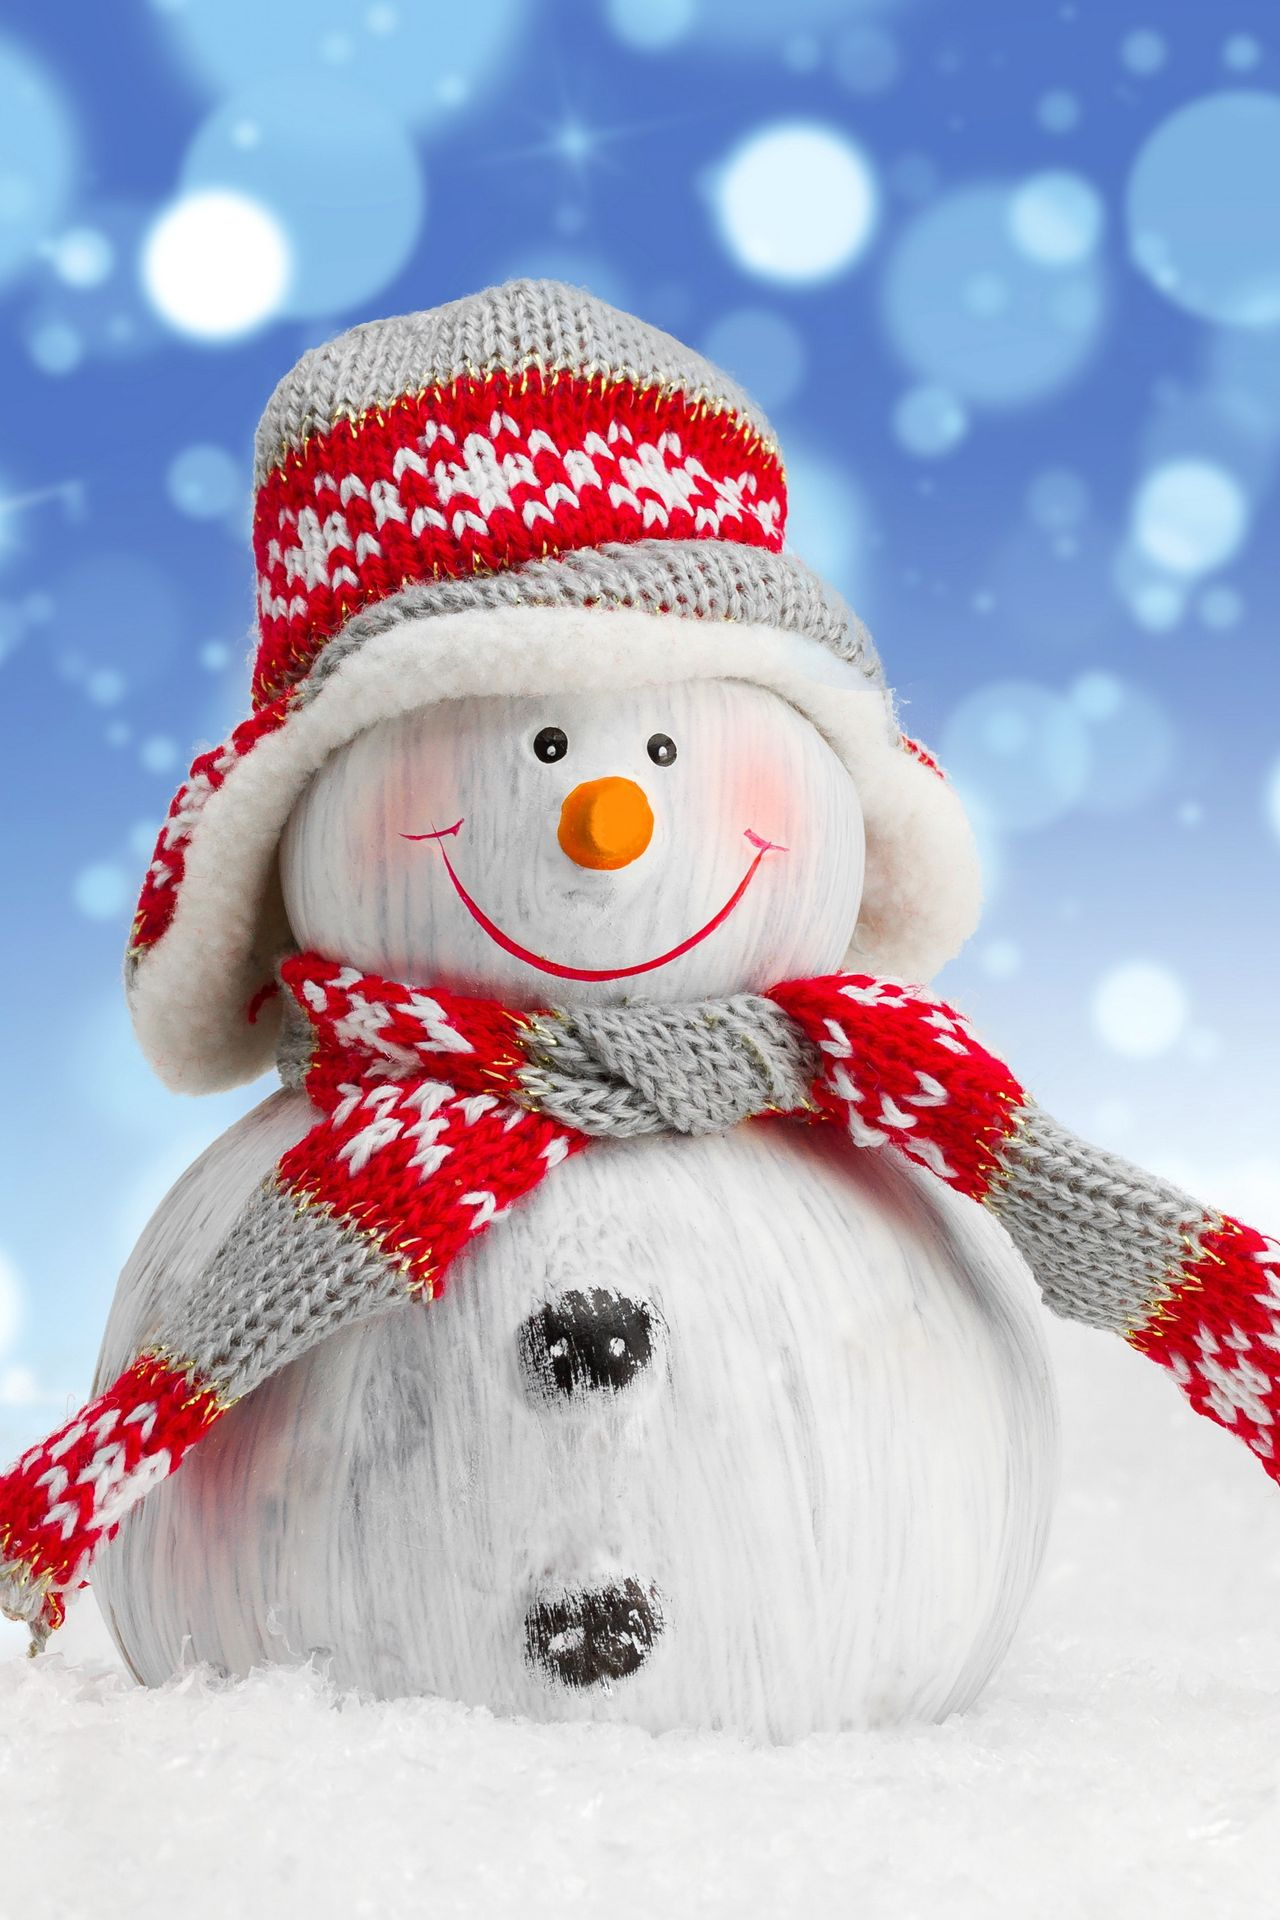 winter snow merry christmas snowman red white 1280x1920